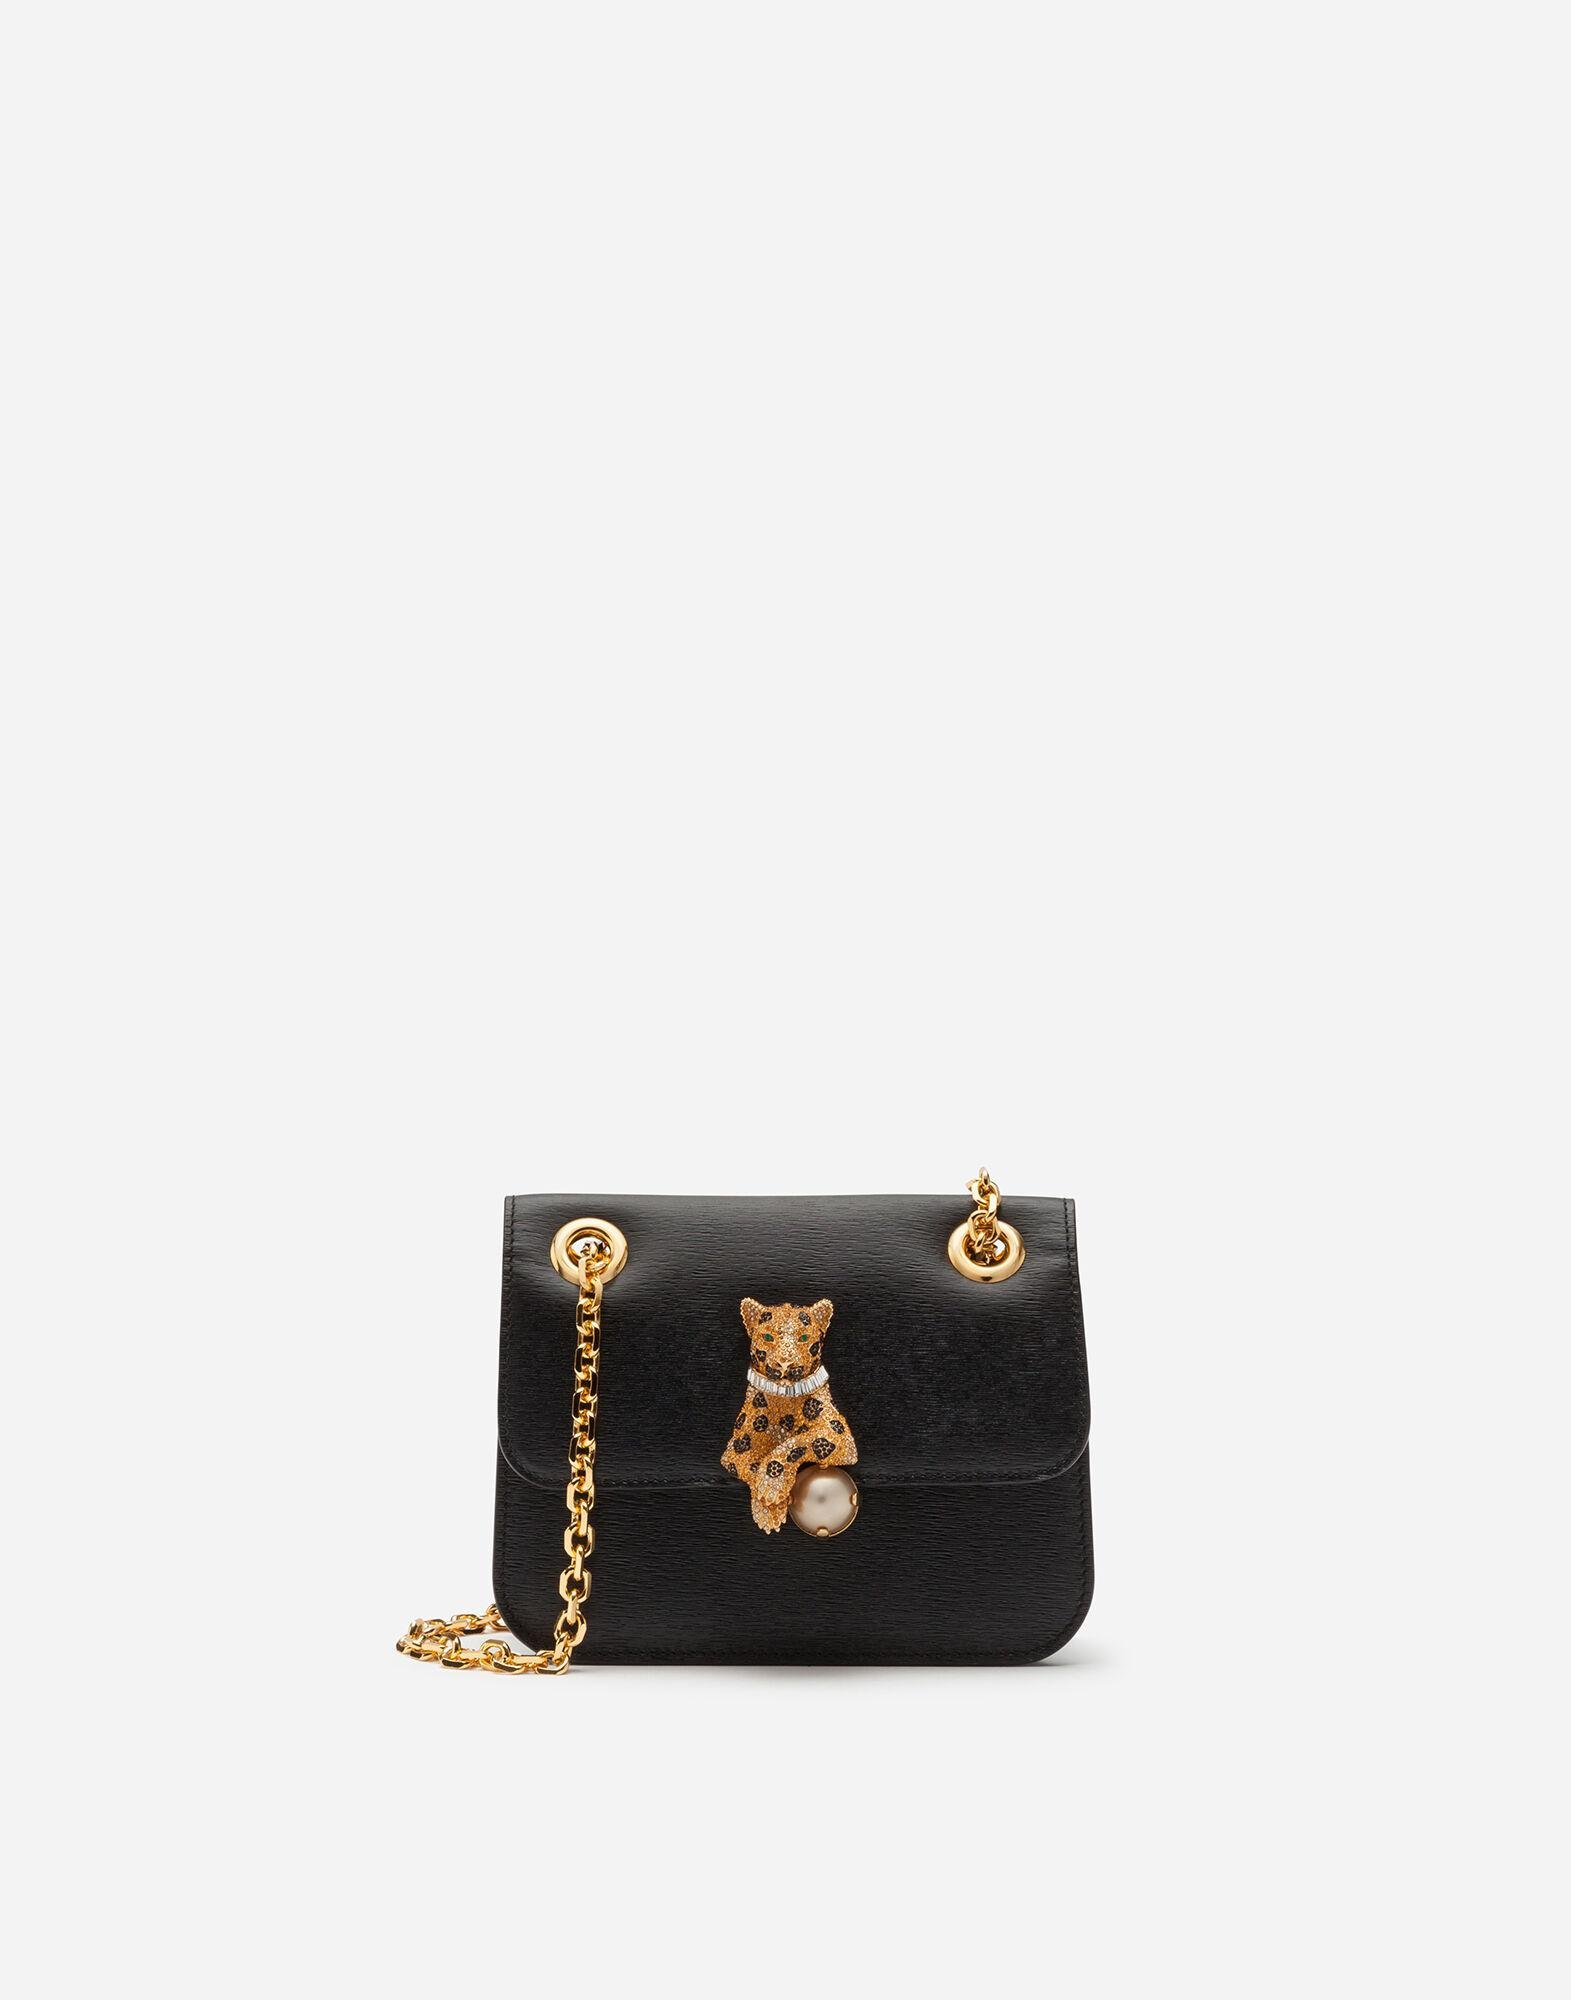 Small jungle bag in calfskin with bejeweled closure